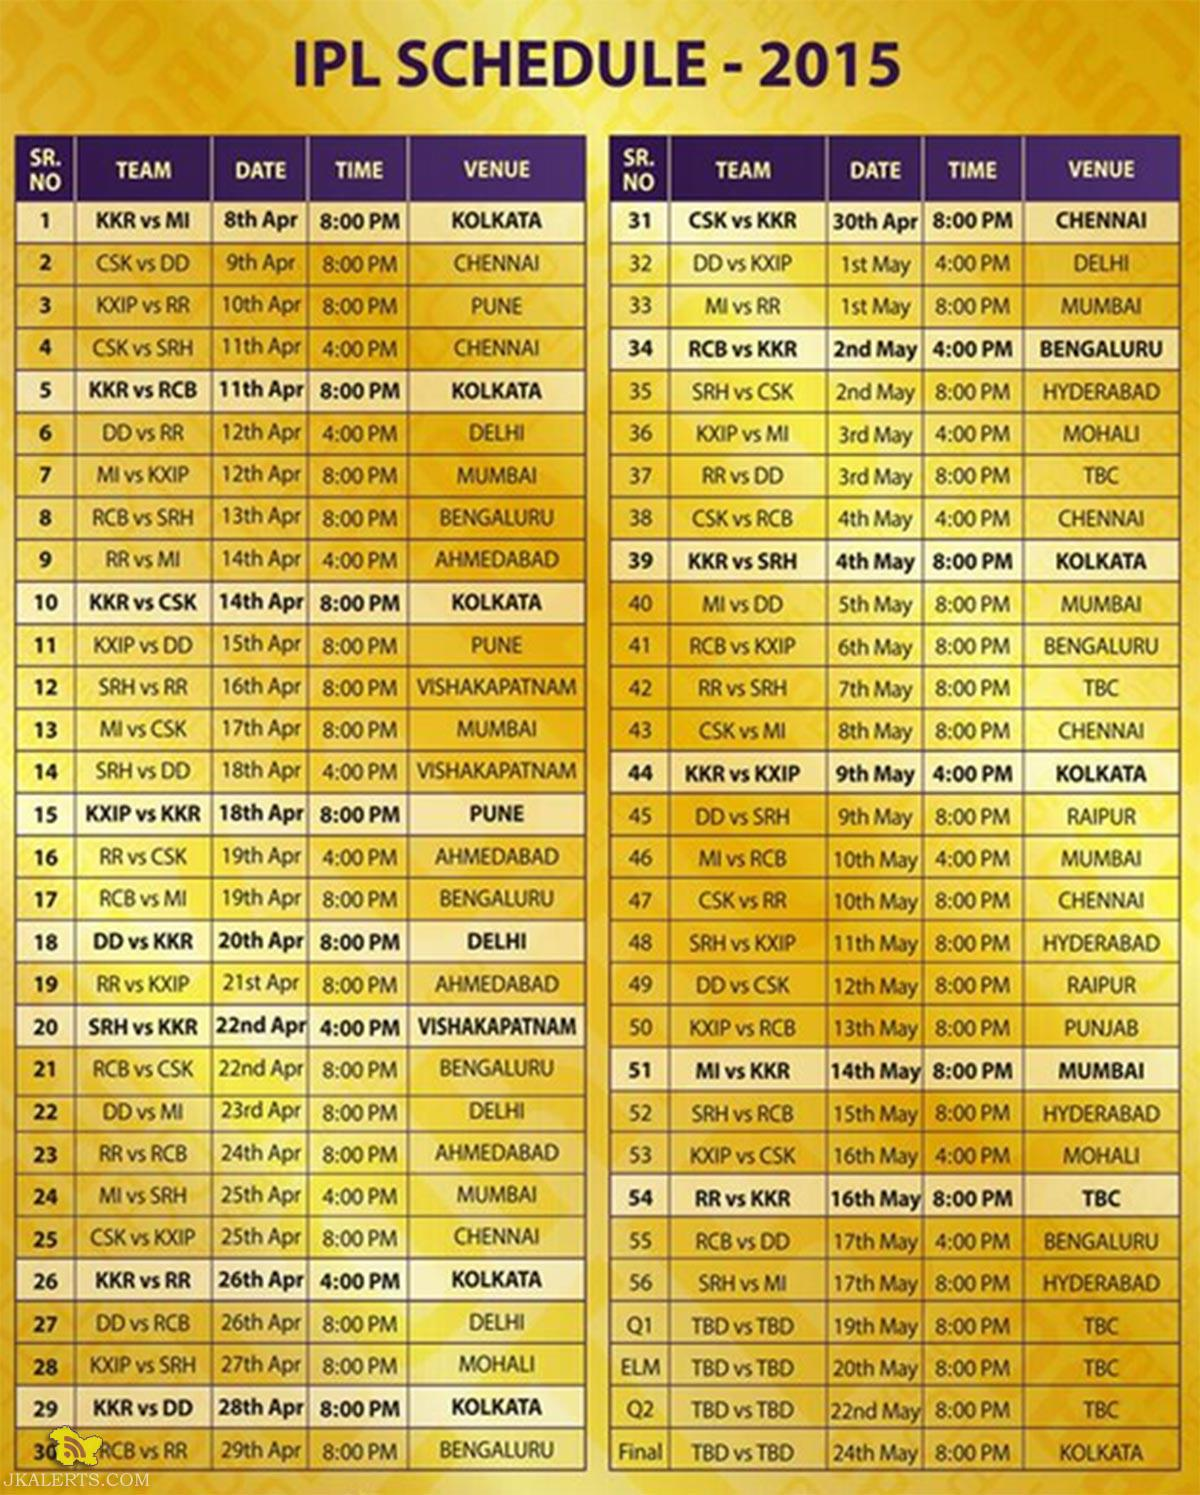 IPL 2015 Schedule, Time table and IPL 8 Match timings.